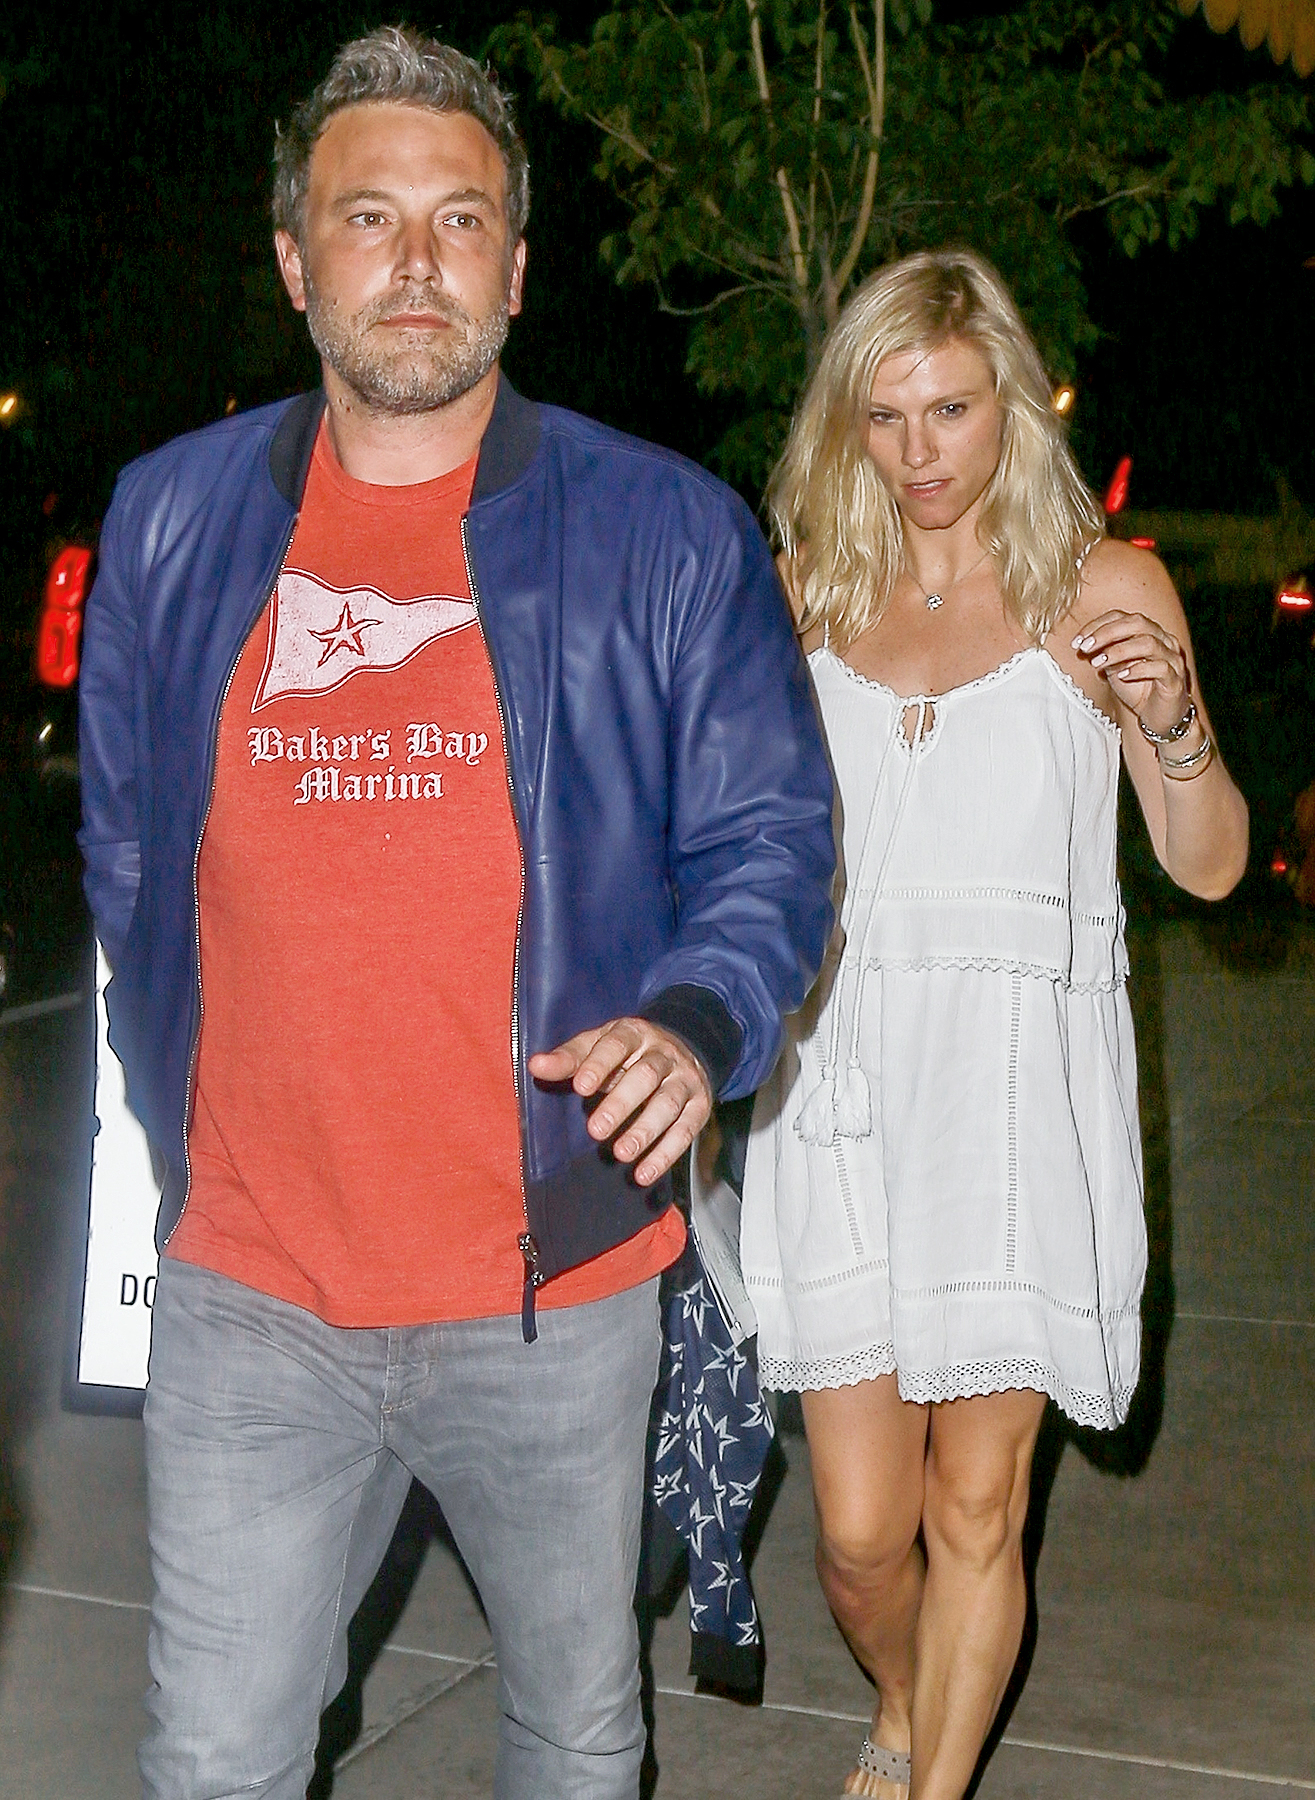 Ben Affleck and Lindsay Shookus go to dinner at Pizzeria Mozza in Los Angeles on August 1, 2017.